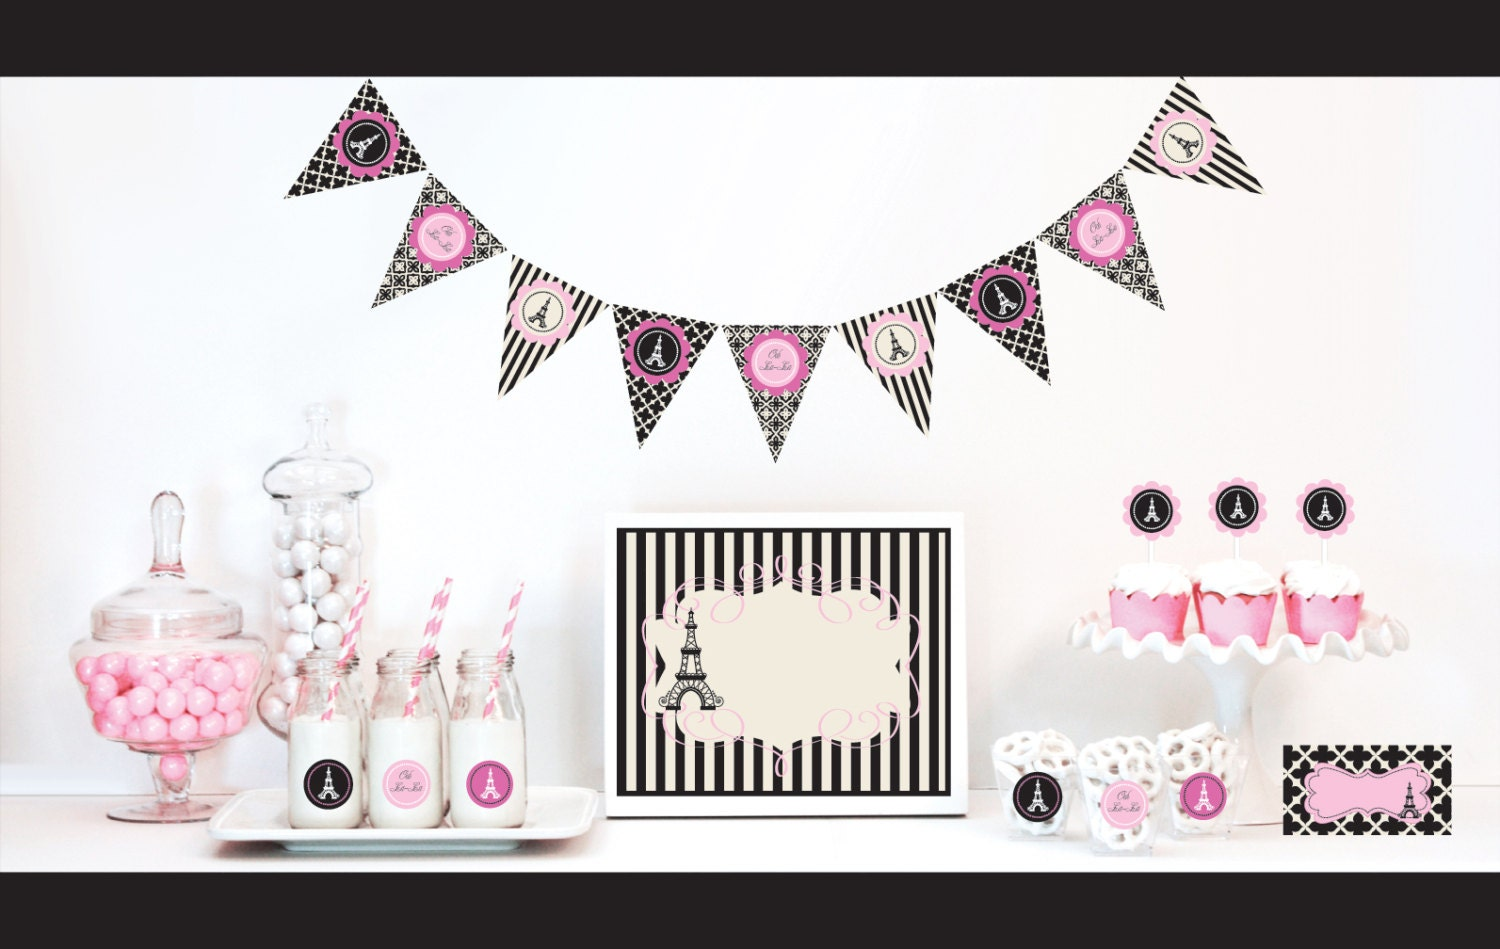 Paris Themed Party Decorations Kit Bridal Shower By Modparty